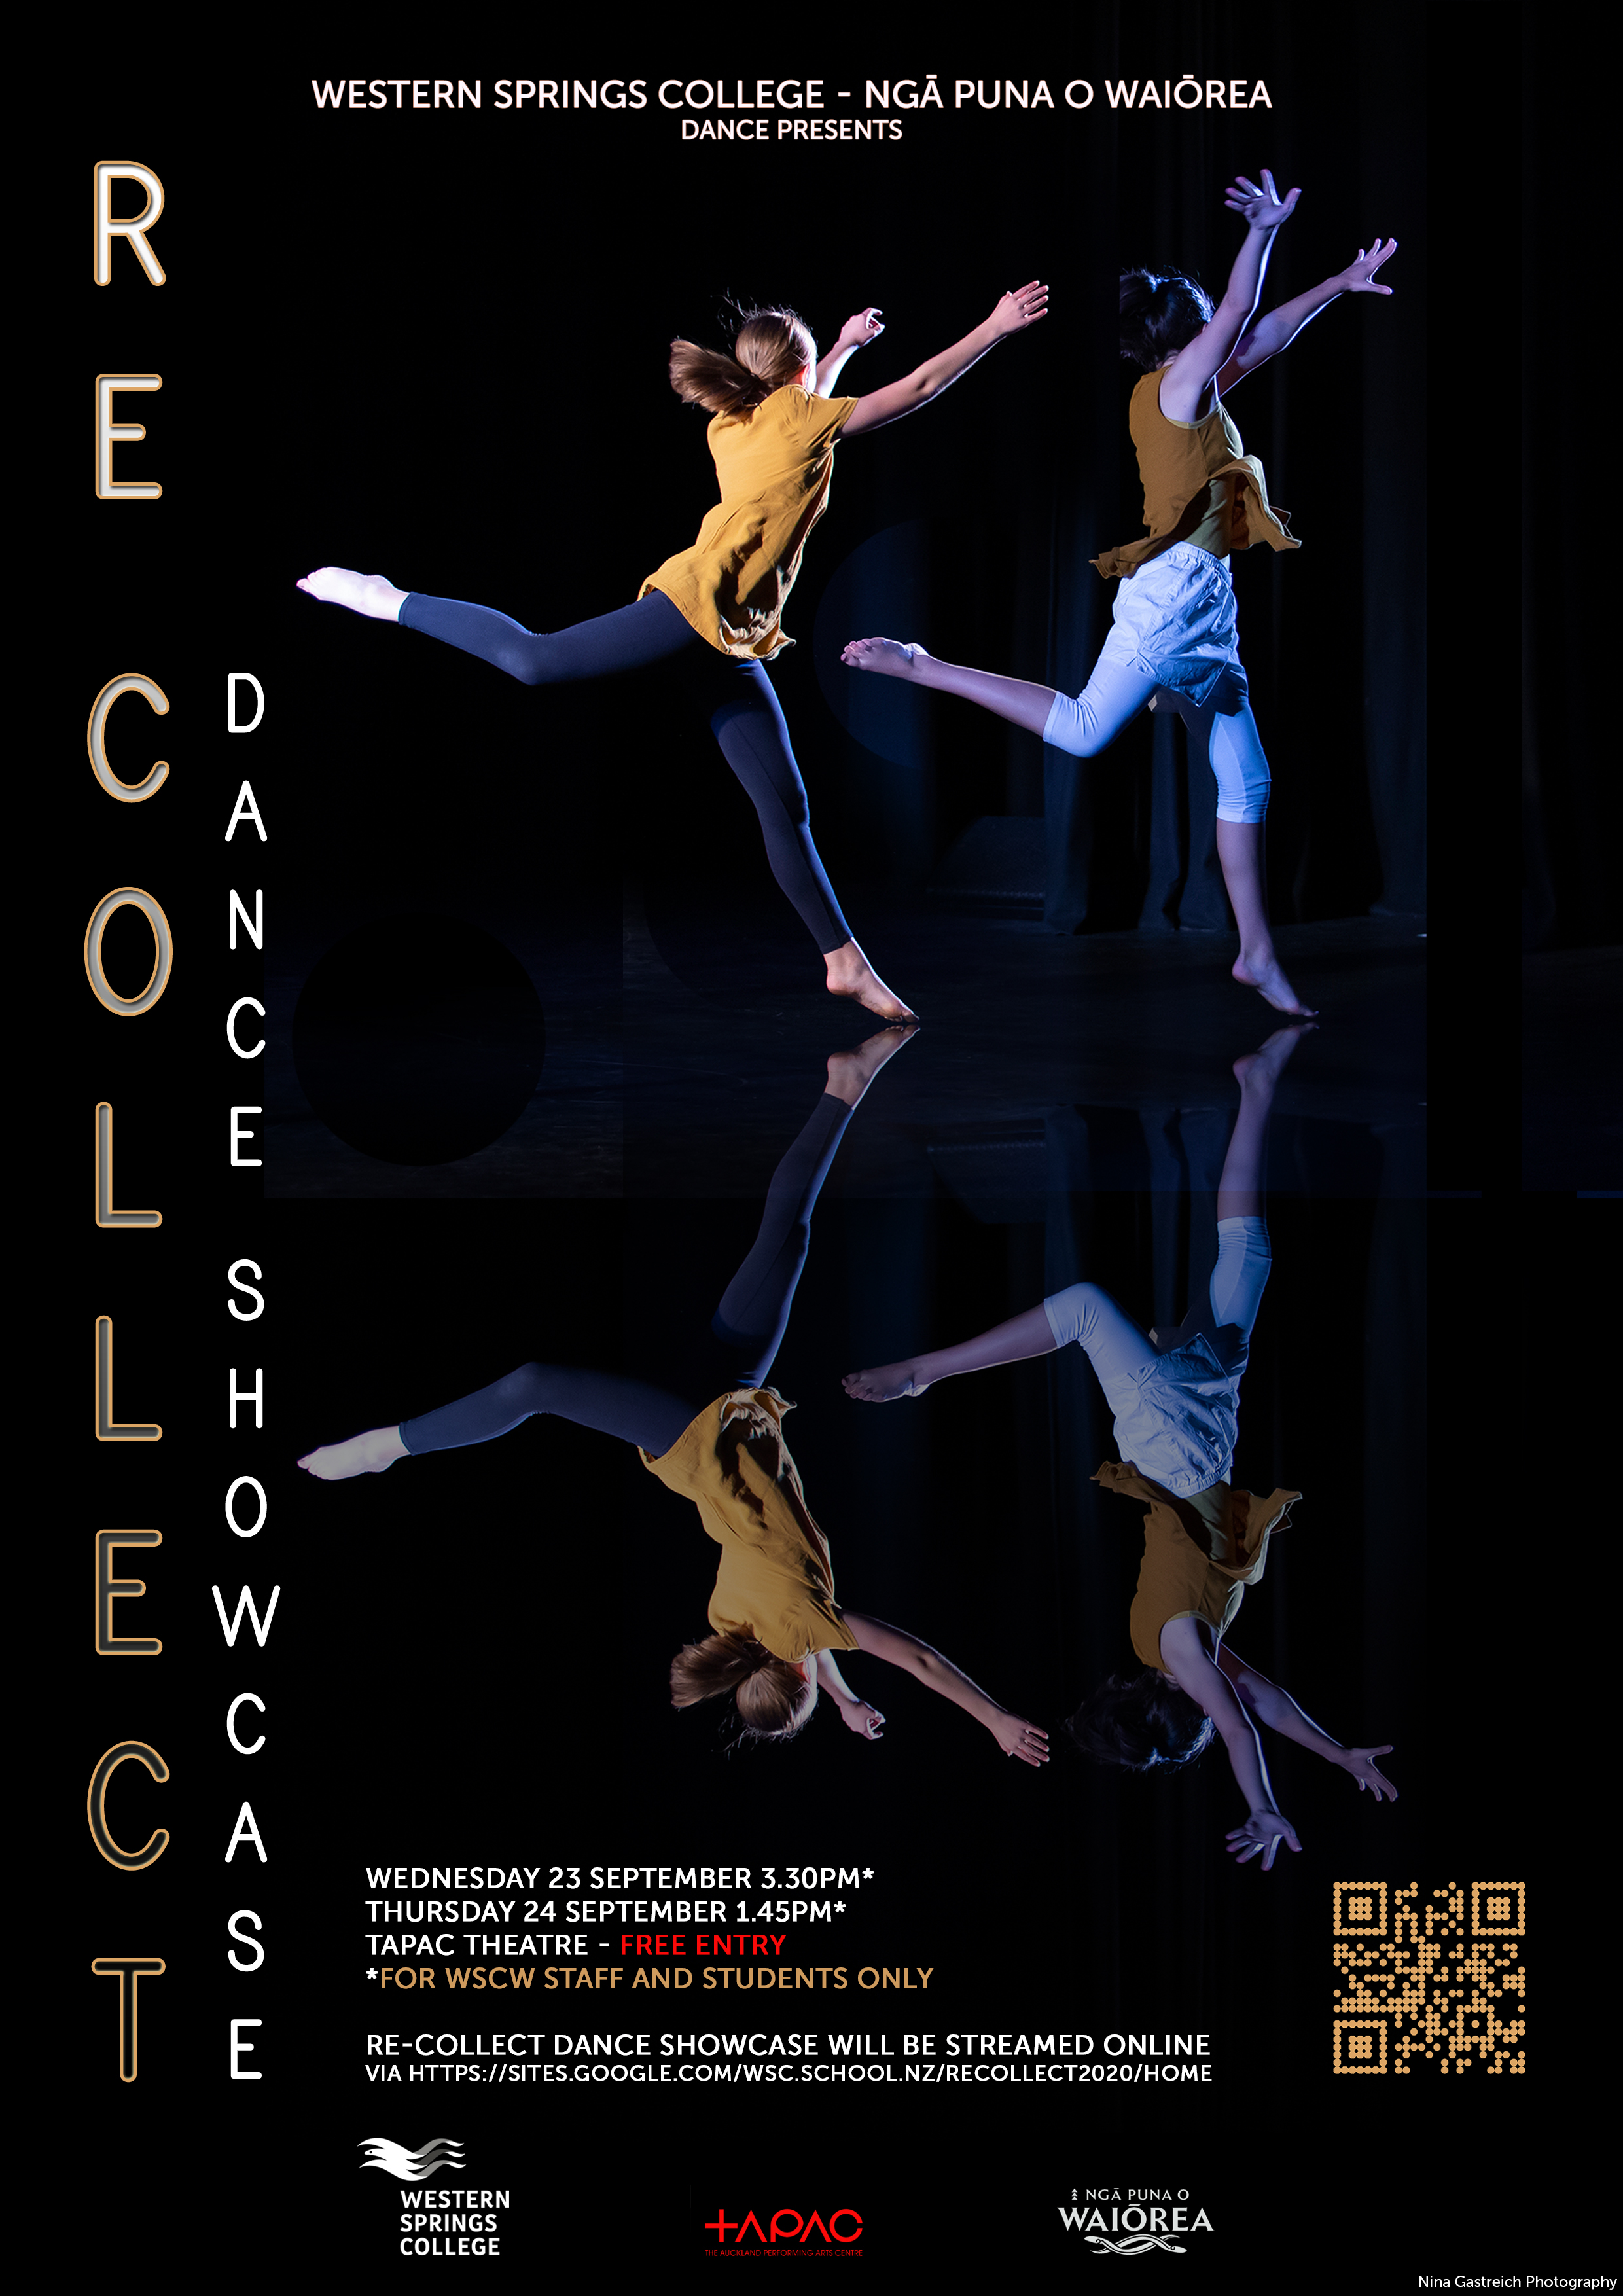 WSCW Dance Department Presents – Re Collect